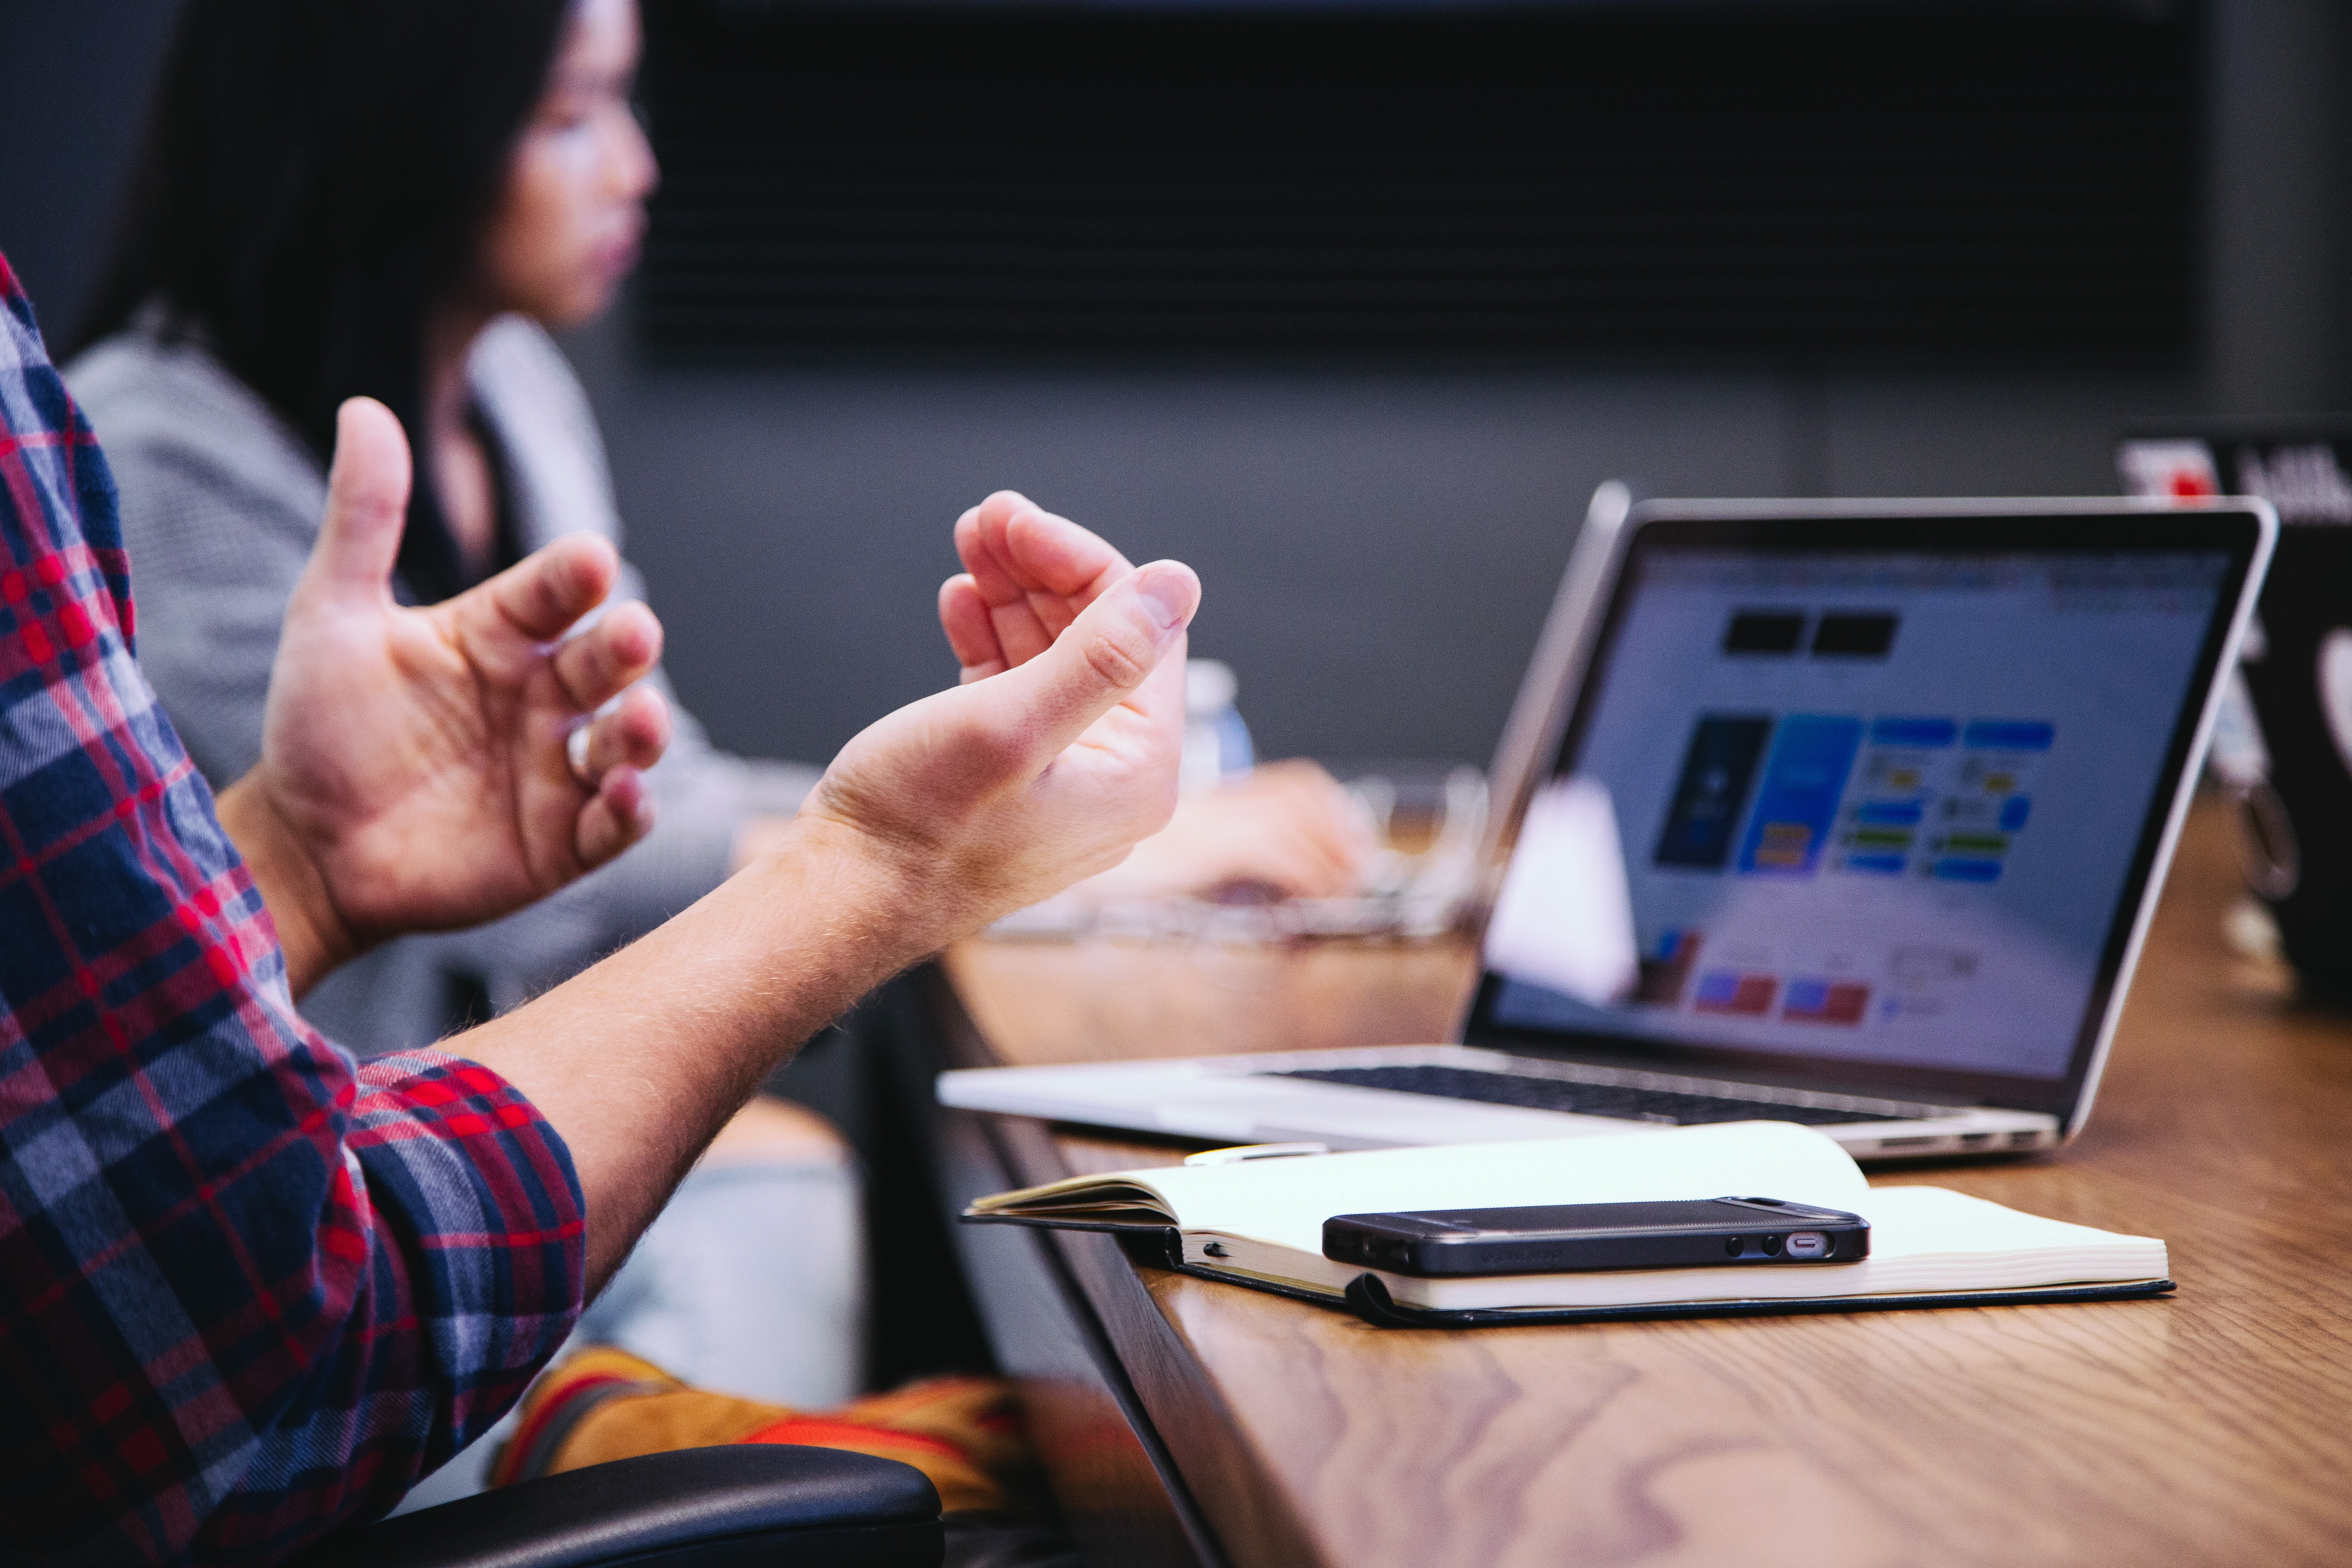 Connect Multiple Data Sources in Your App using these 6 Open Source Tools